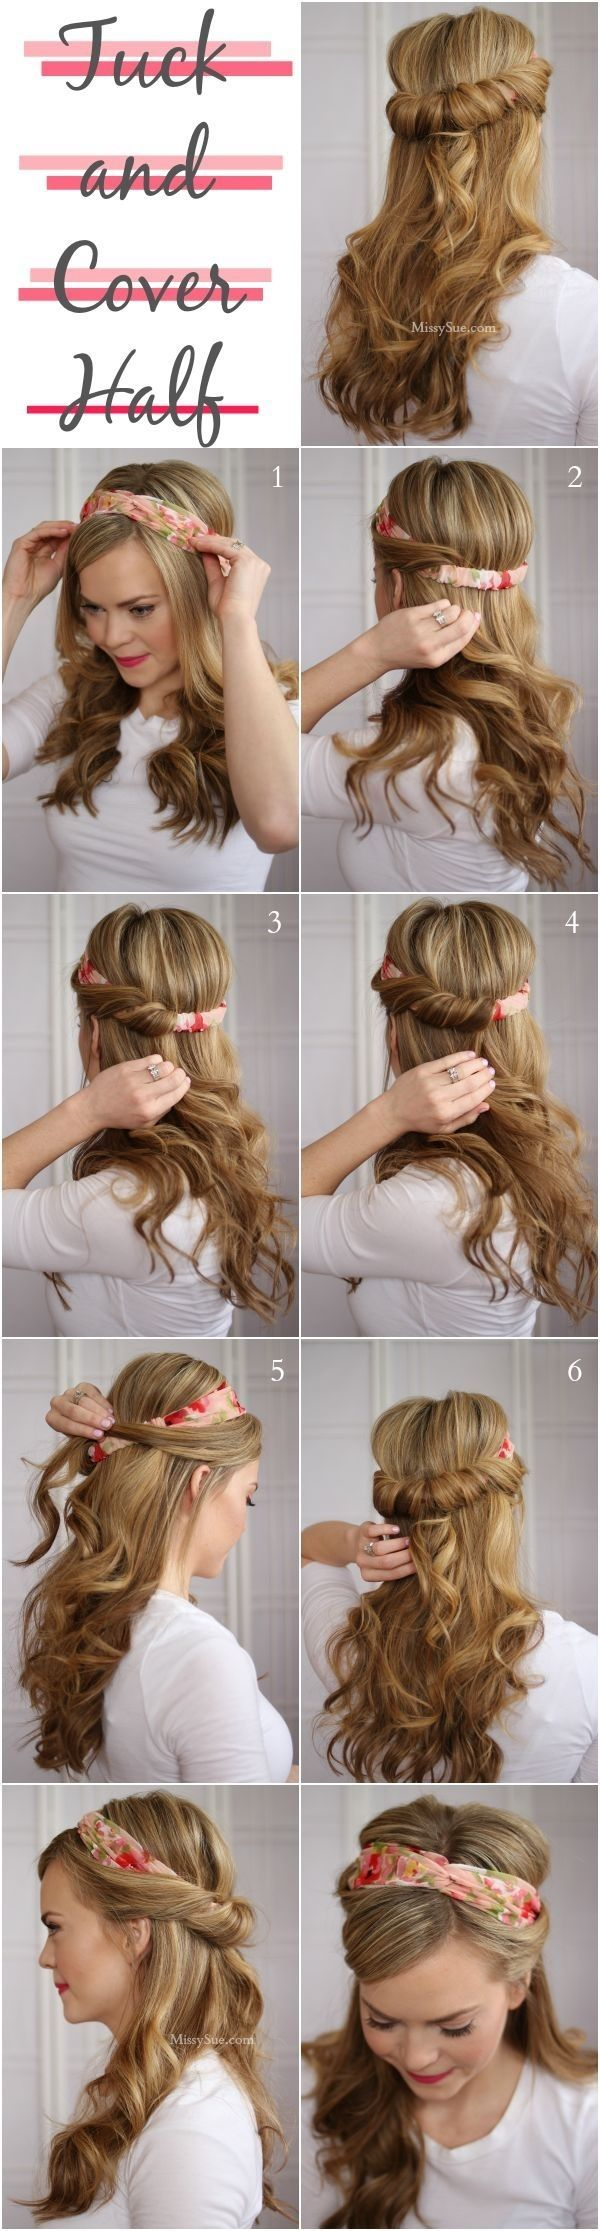 Or do the tuck and cover. | 26 Lazy Girl Hairstyling Hacks | Should finally get around to trying this when I have long hair.